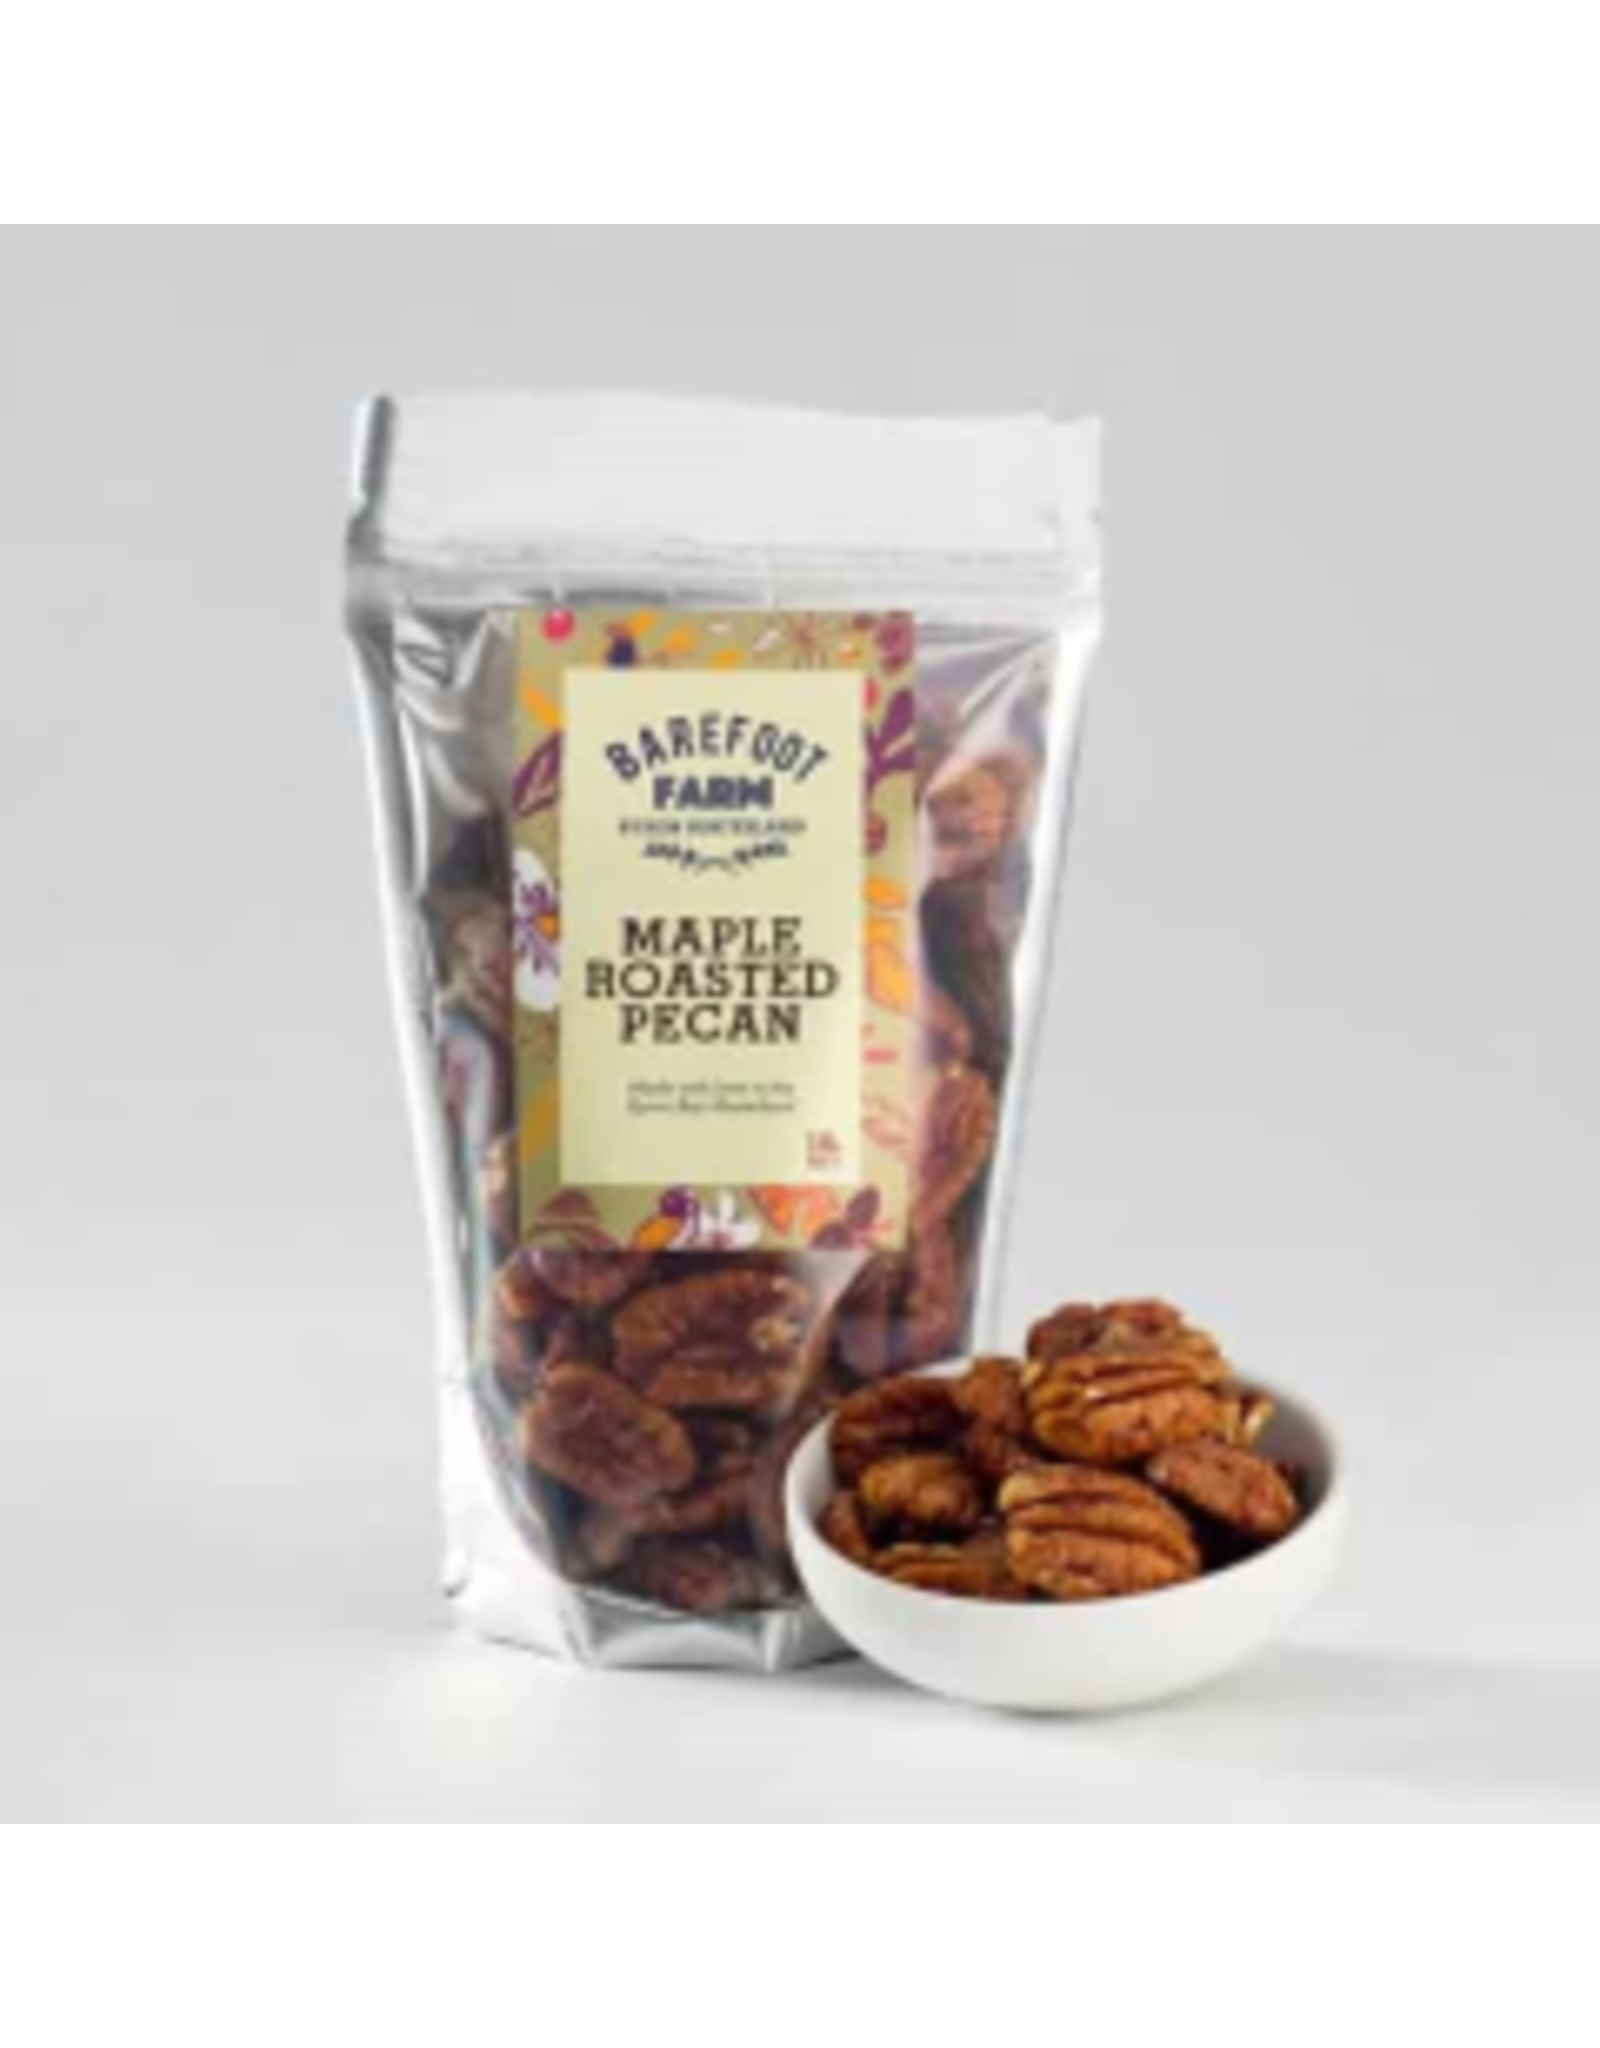 Barefoot Farm Maple Roasted Pecans 130g